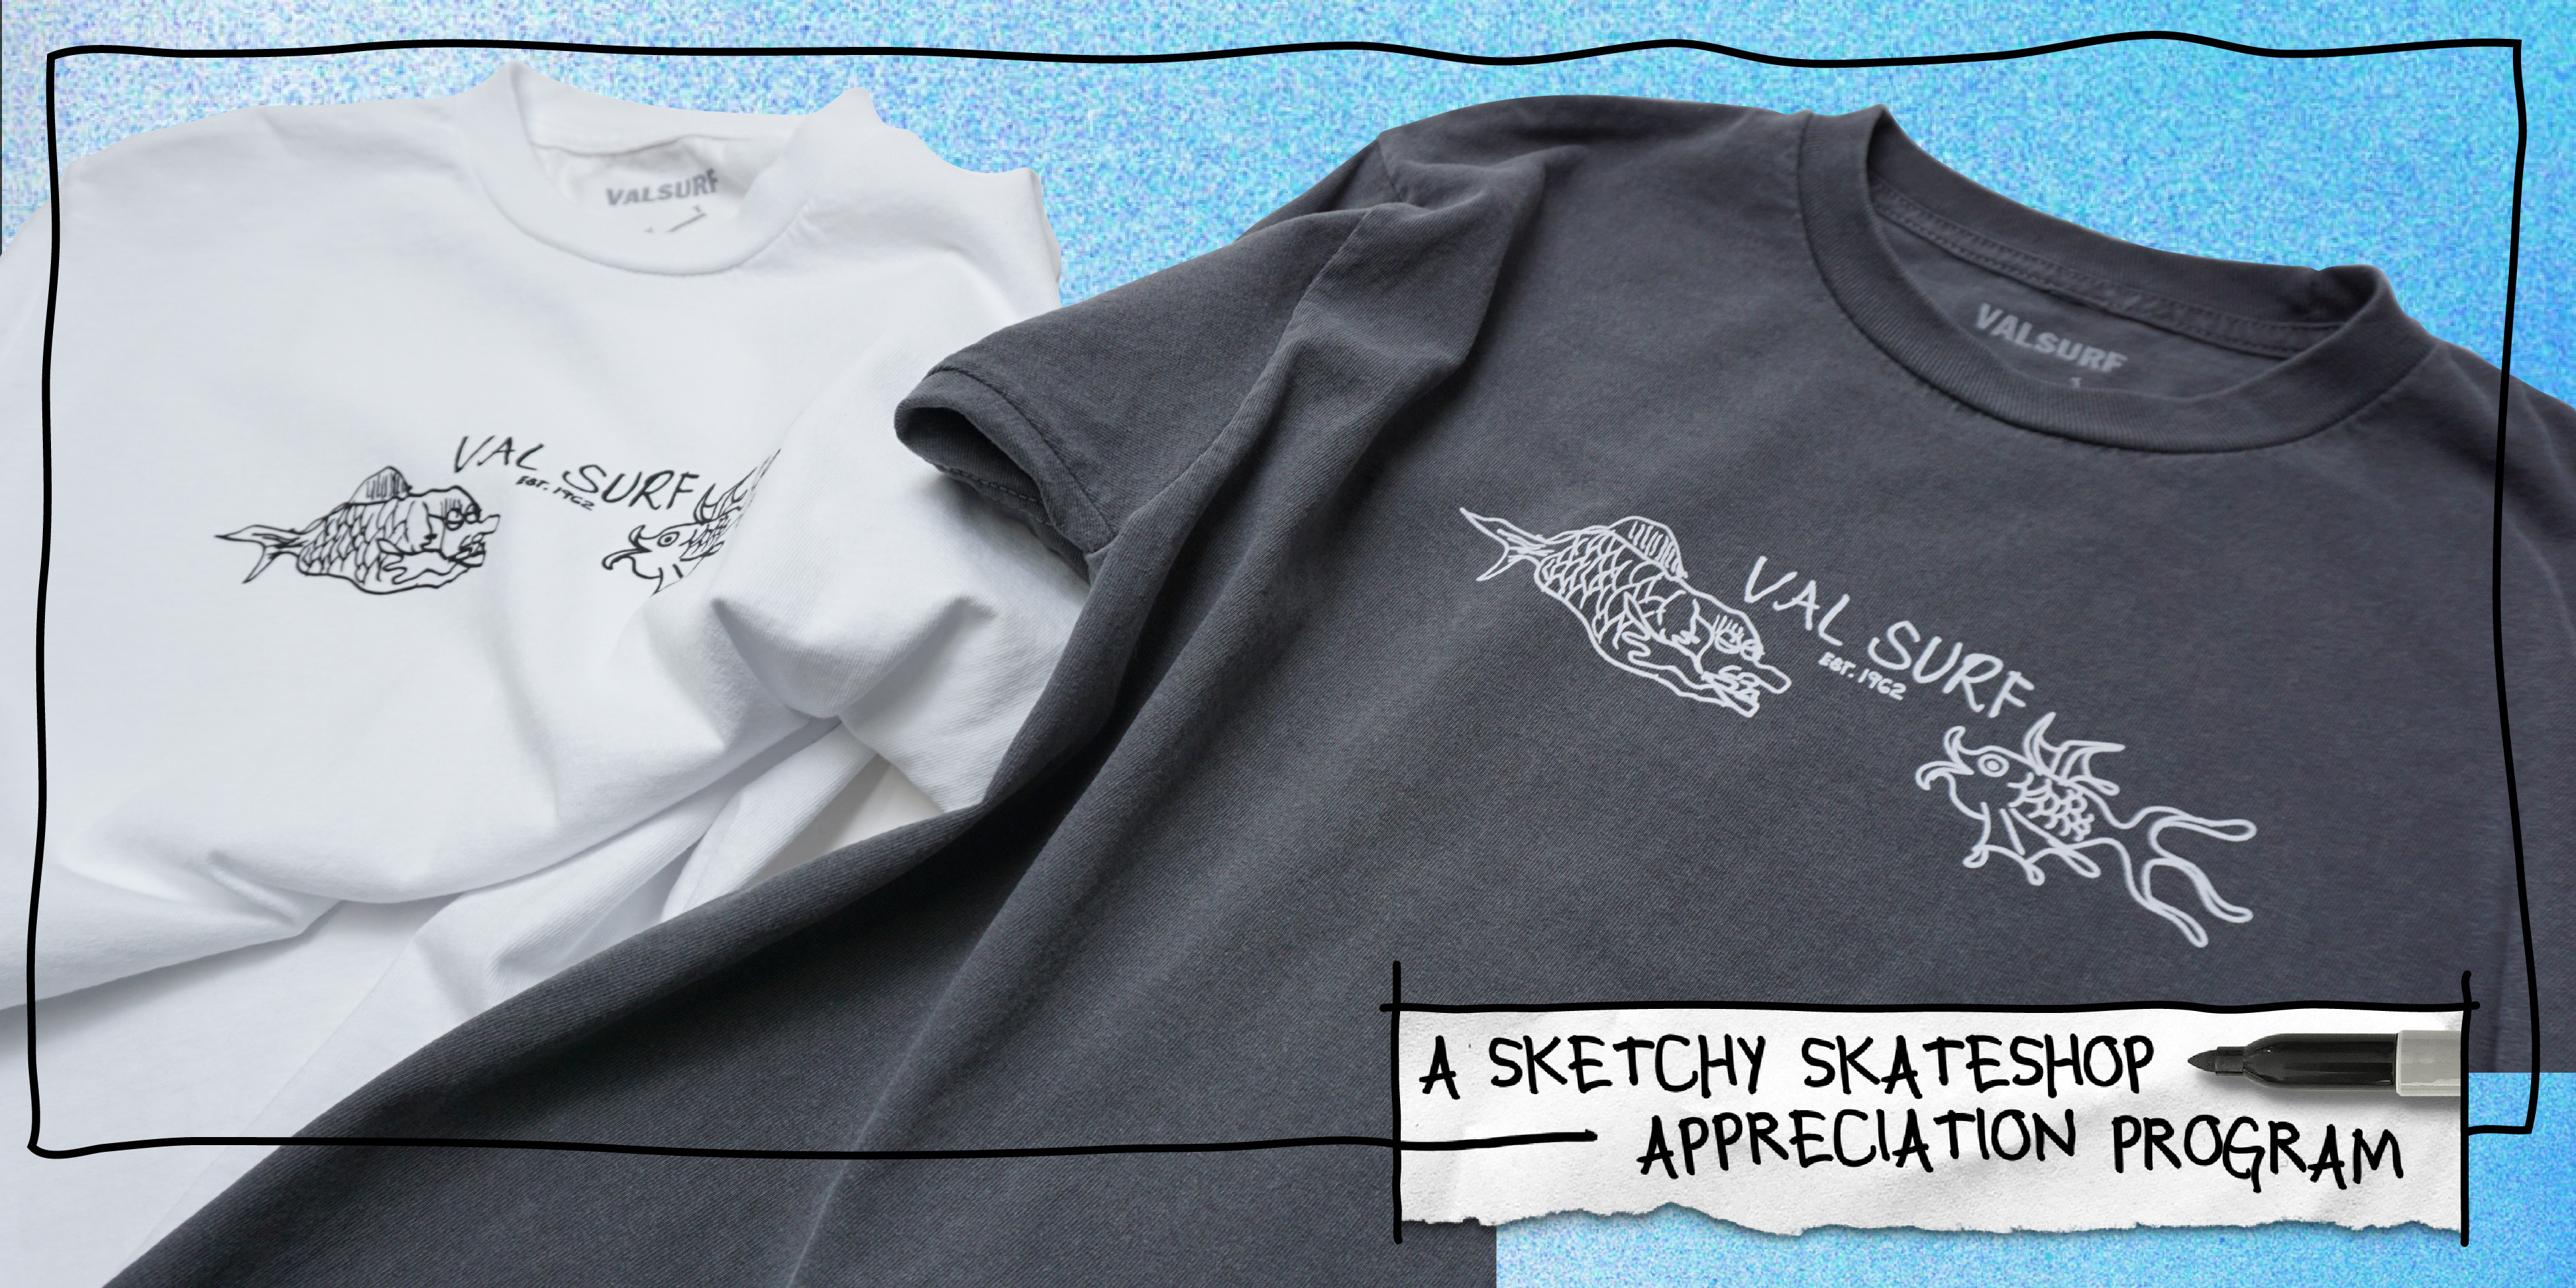 A sketchy skateshop appreciation program - white Val Surf shirt with Gonz fish artwork, black Val Surf shirt with Gonz fish artwork